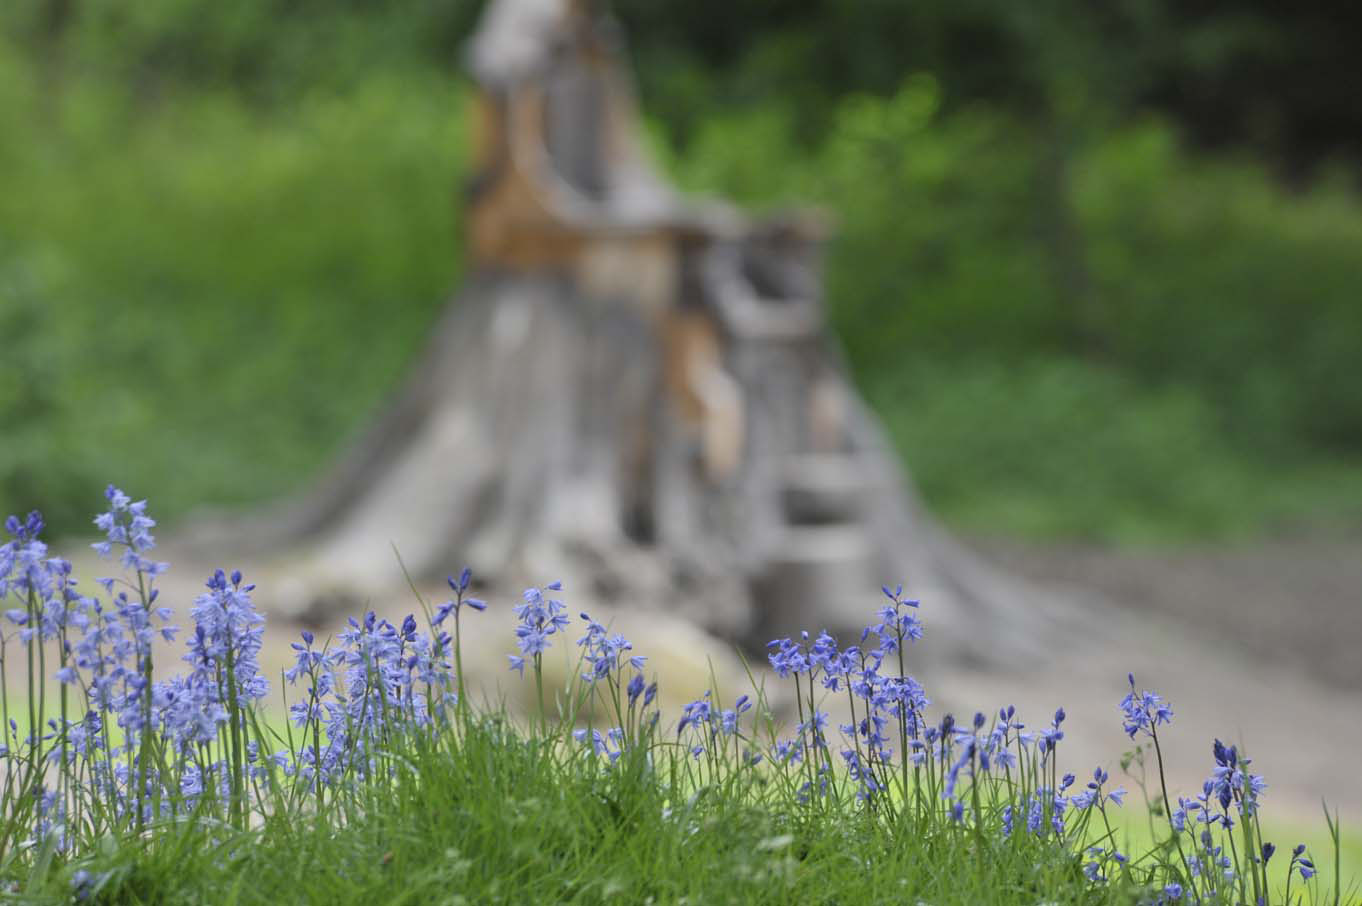 The Throne in Fletcher Park, with bluebells in the foreground.